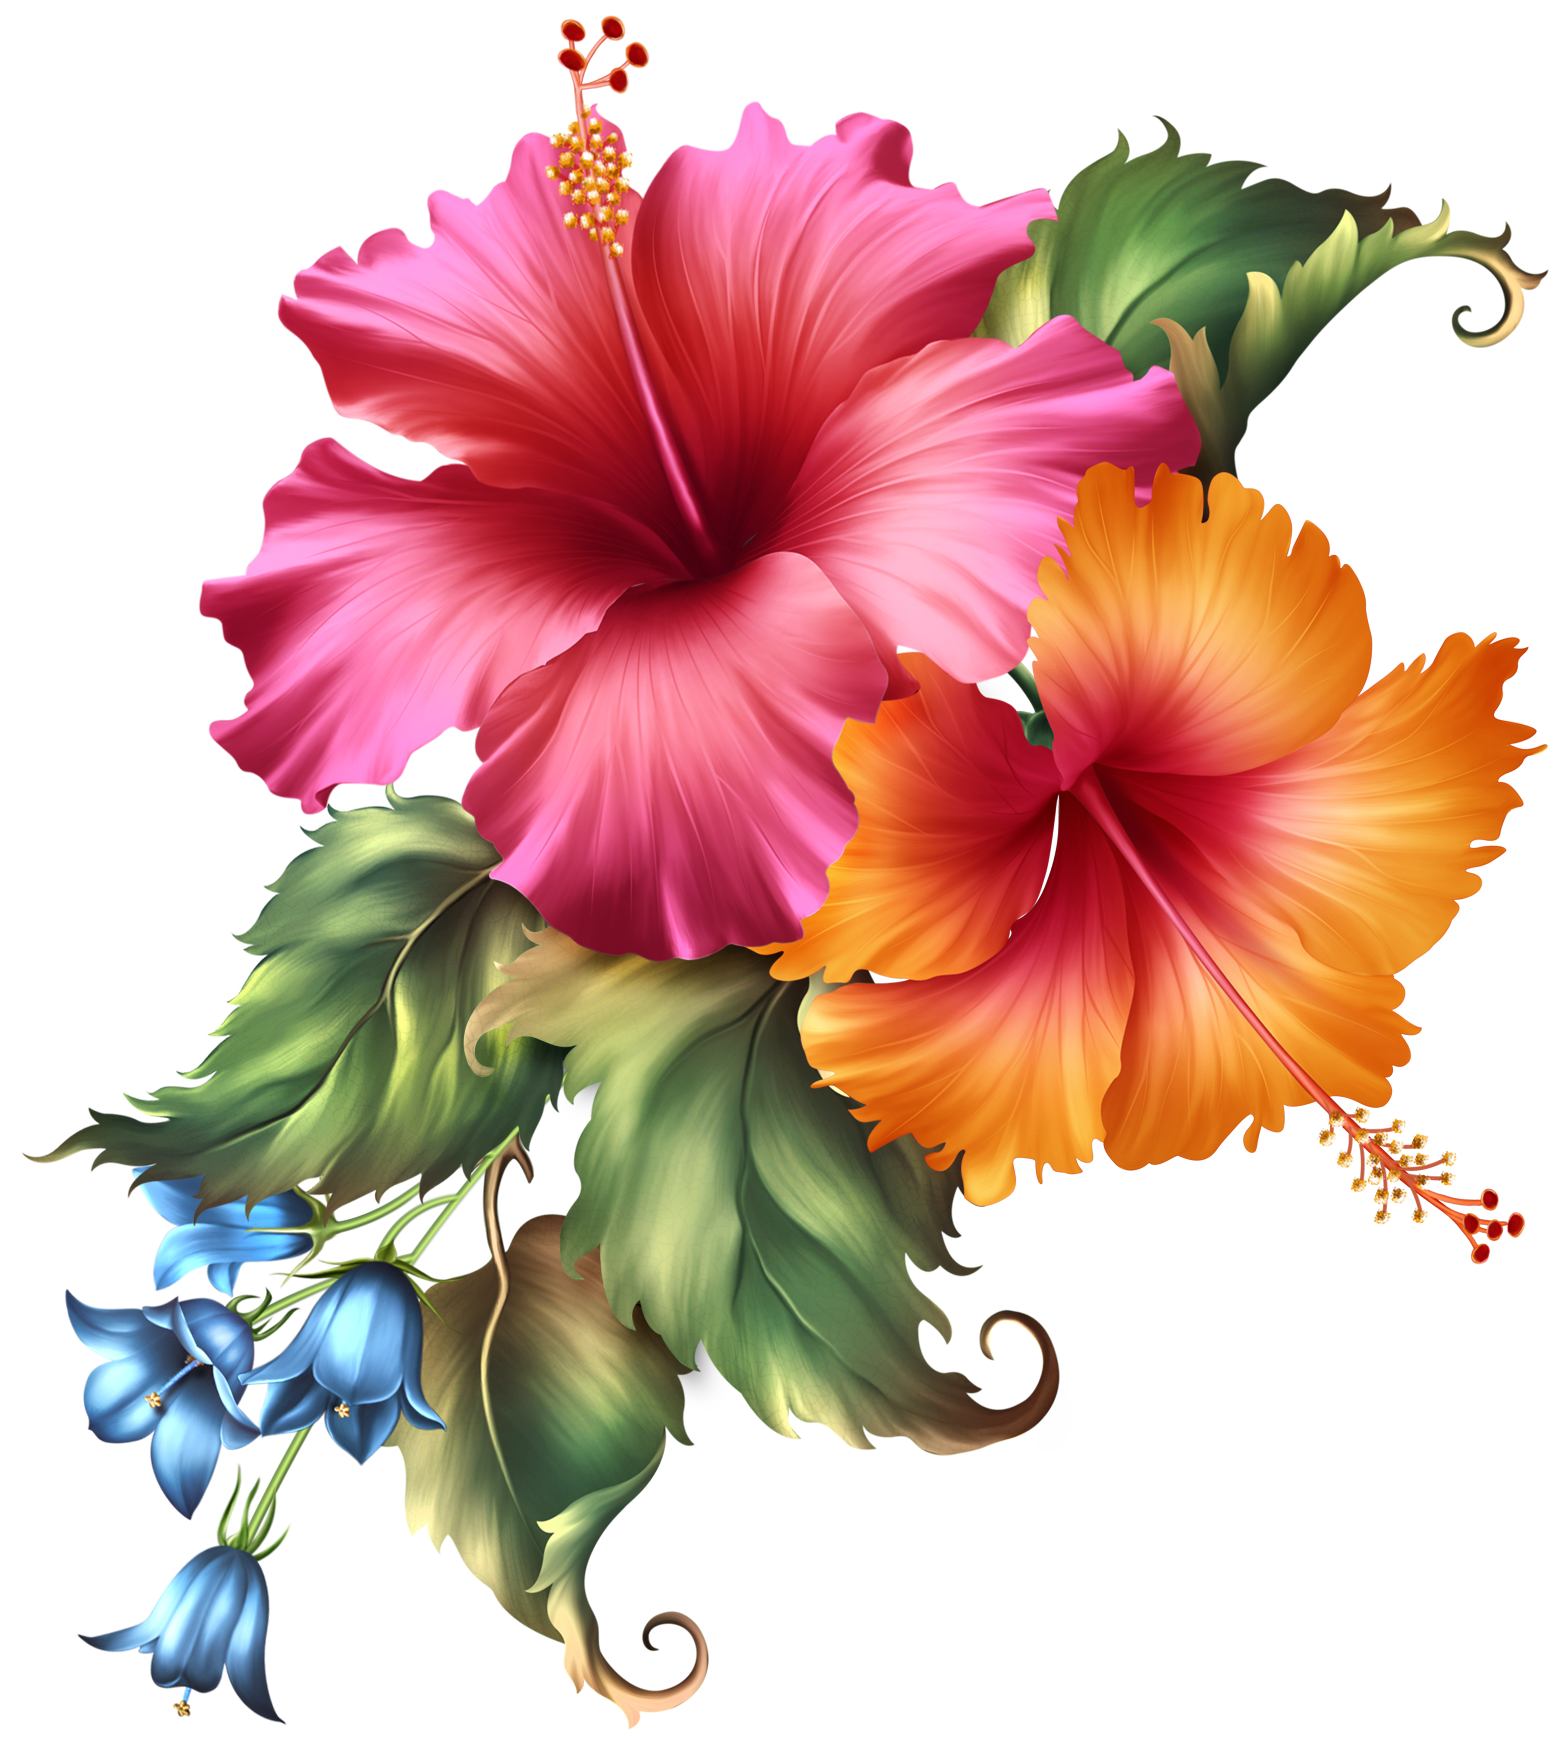 Fashionably Florale Flower Art Painting Flower Painting Flower Art